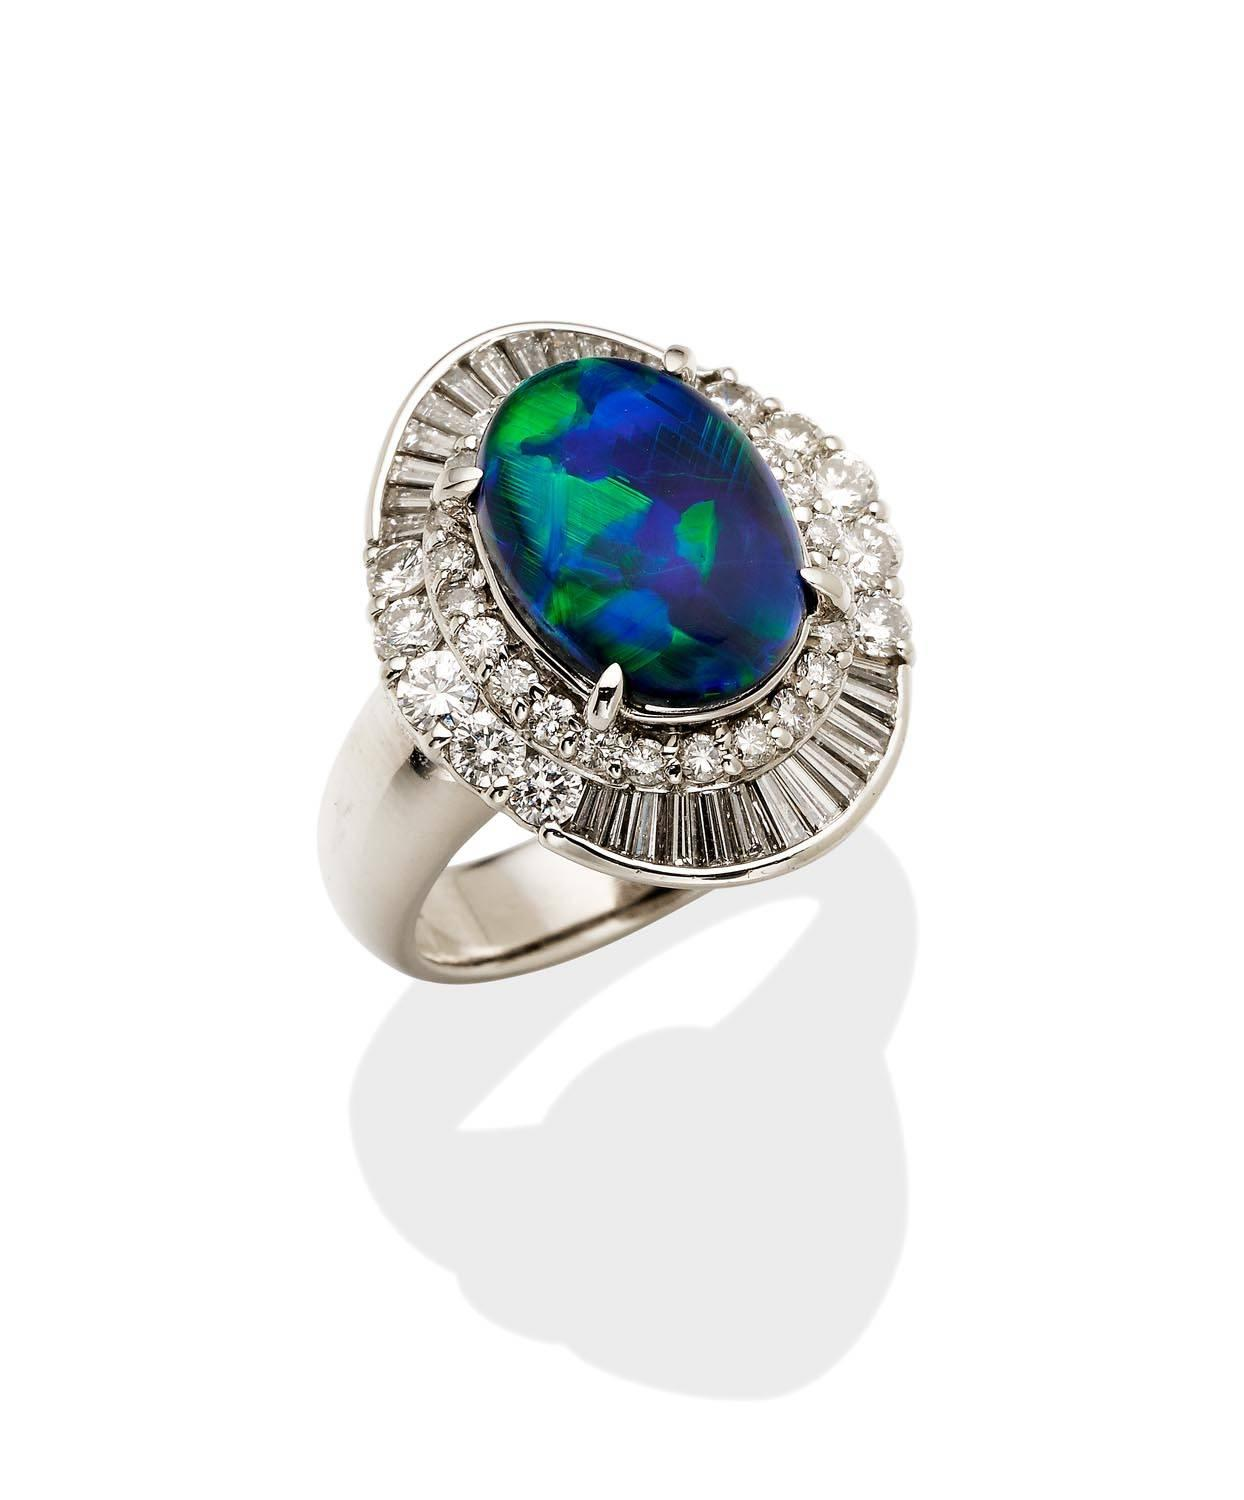 0ac058f67f30b1 Lot 113 of 298: An opal and diamond cluster ring, the central oval black  opal cabochon of known weight 2.55 carats, claw set above a stepped diamond  frame.